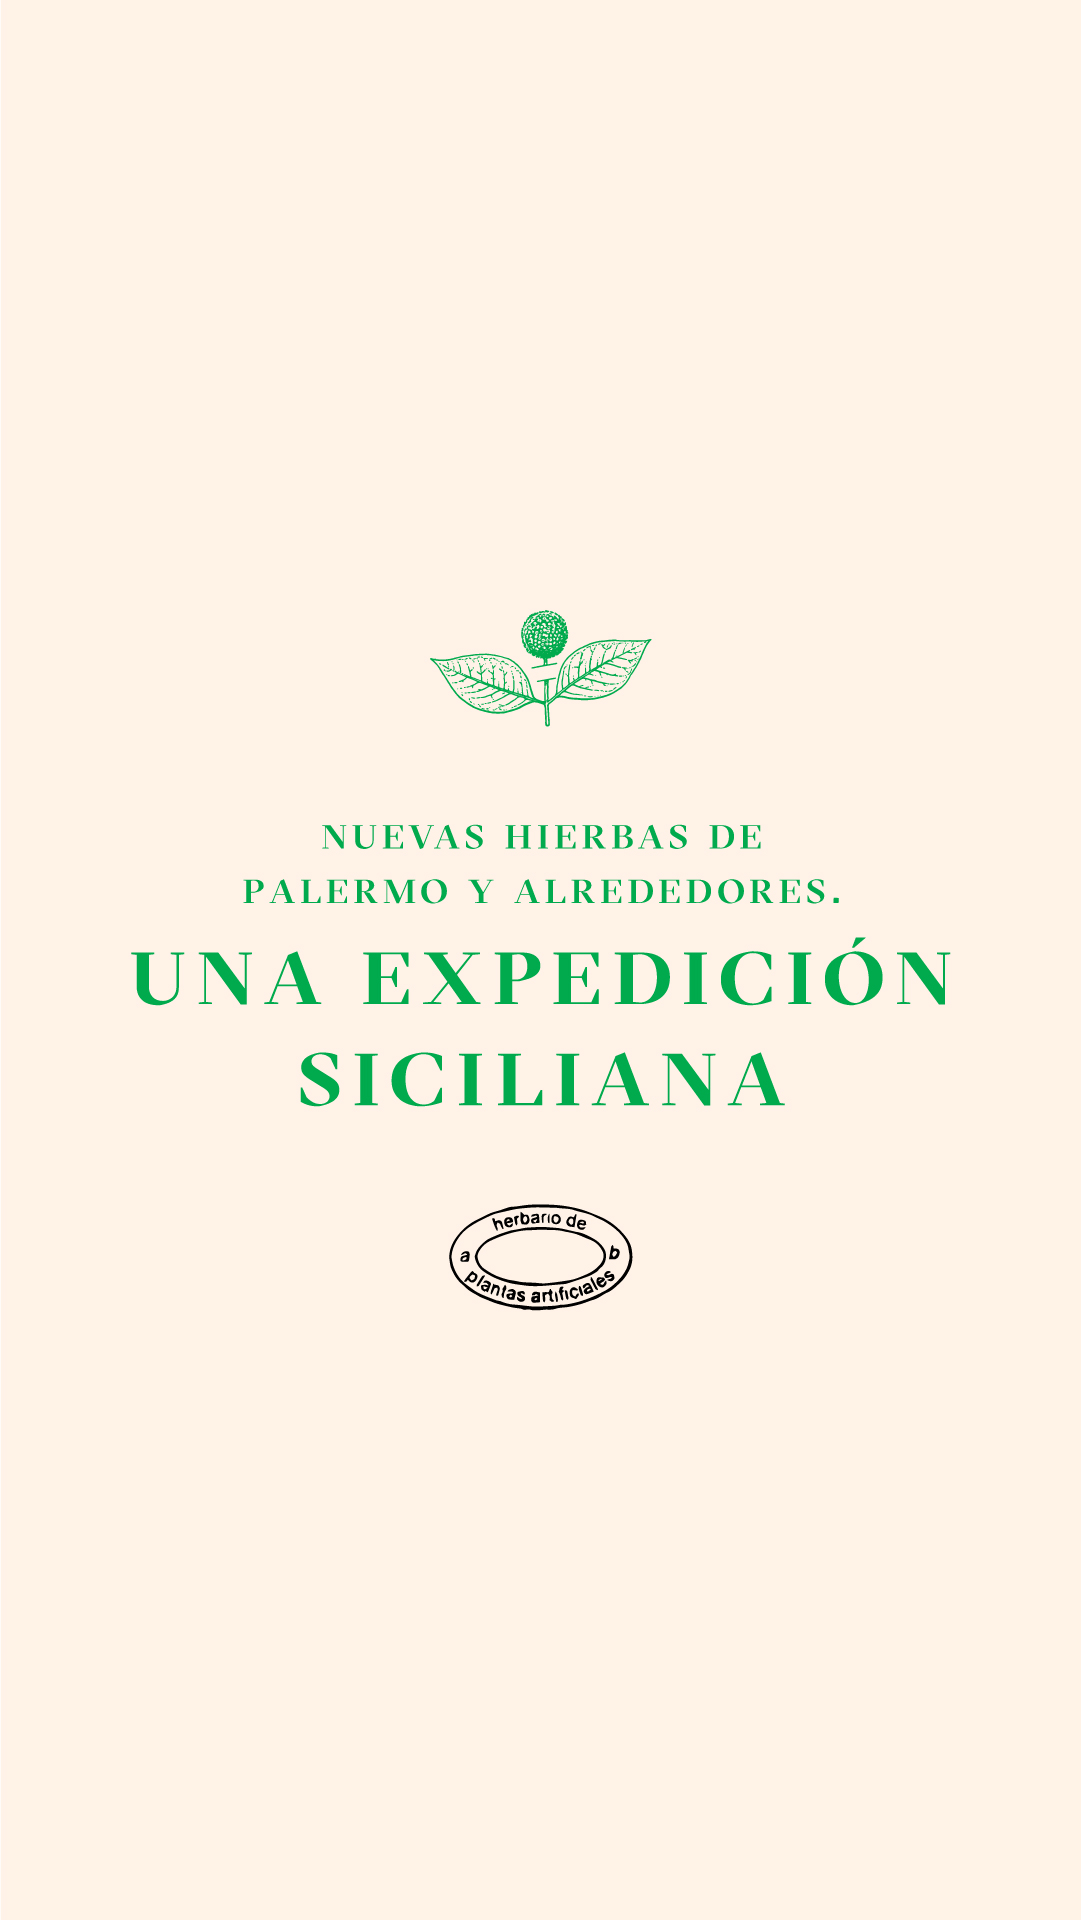 Una Expedición Siciliana